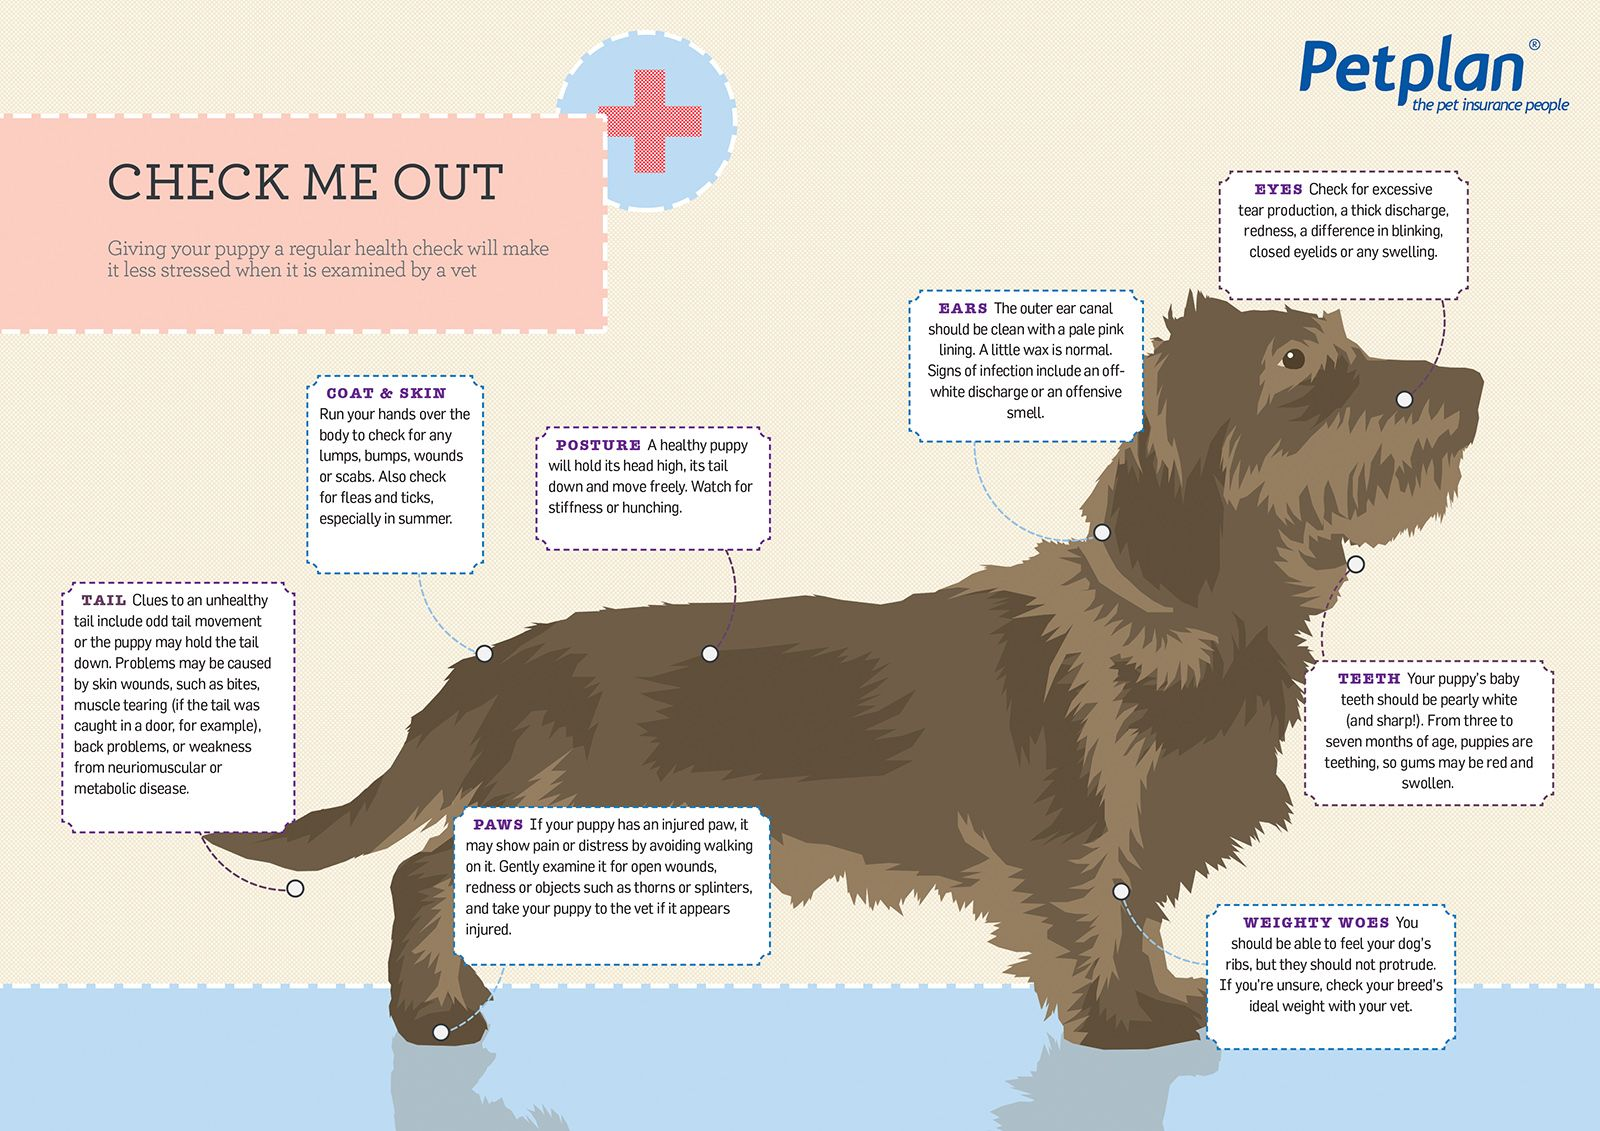 Check Out These Sizzling Dog Health Tips For More Info Follow Our Blog Www Petplan Com Au Www Petplan Co Dog Health Tips Dog Health Dogs And Puppies